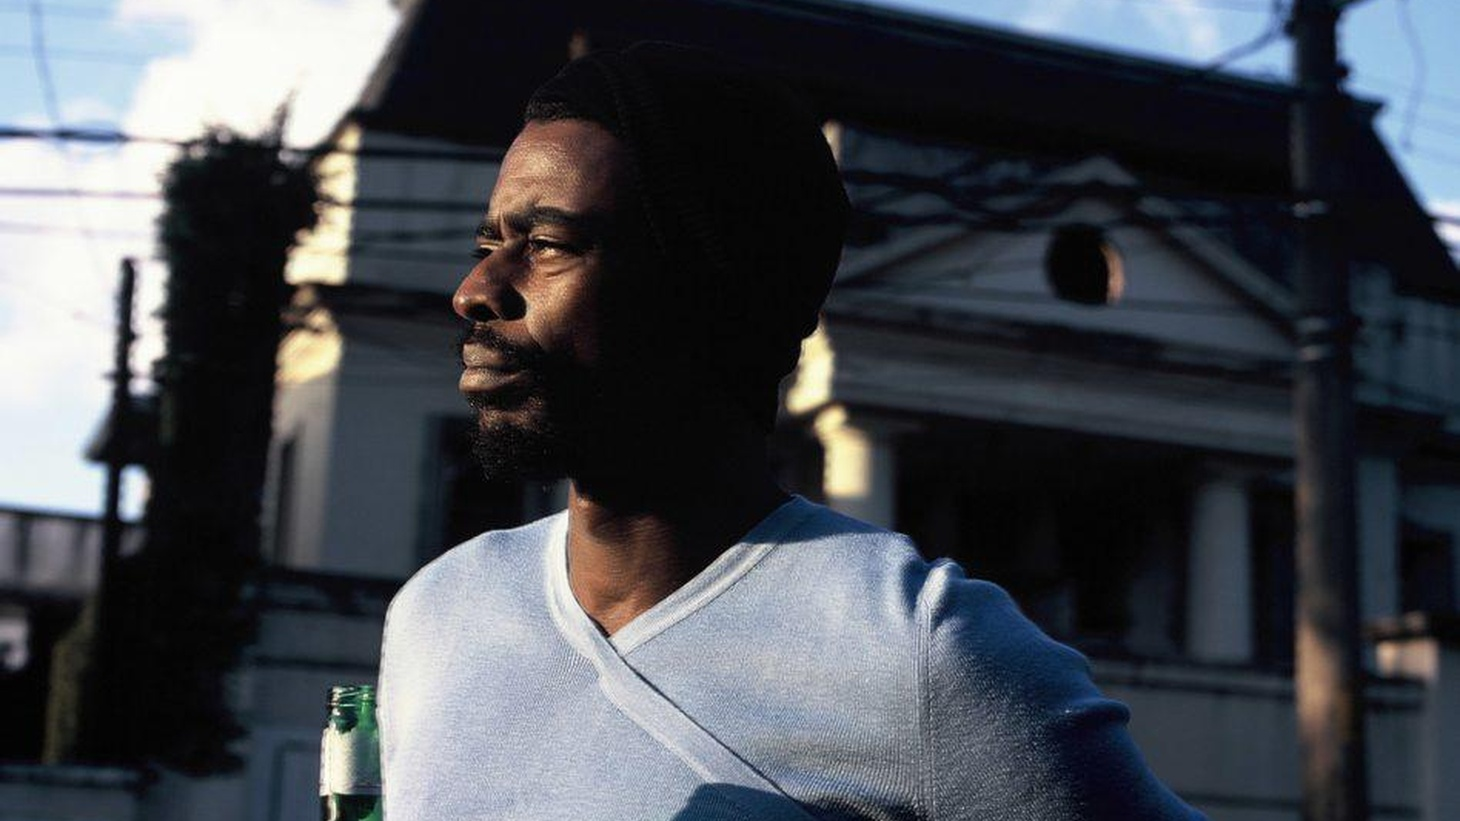 Brazilian singer/songwriter Seu Jorge probably first came to the attention of US citizens through his acting work.  He appeared in the Oscar-nominated Brazilian film, City of God in 2002 and then in Wes Anderson's The Life Aquatic with Steve Zissou two years later.